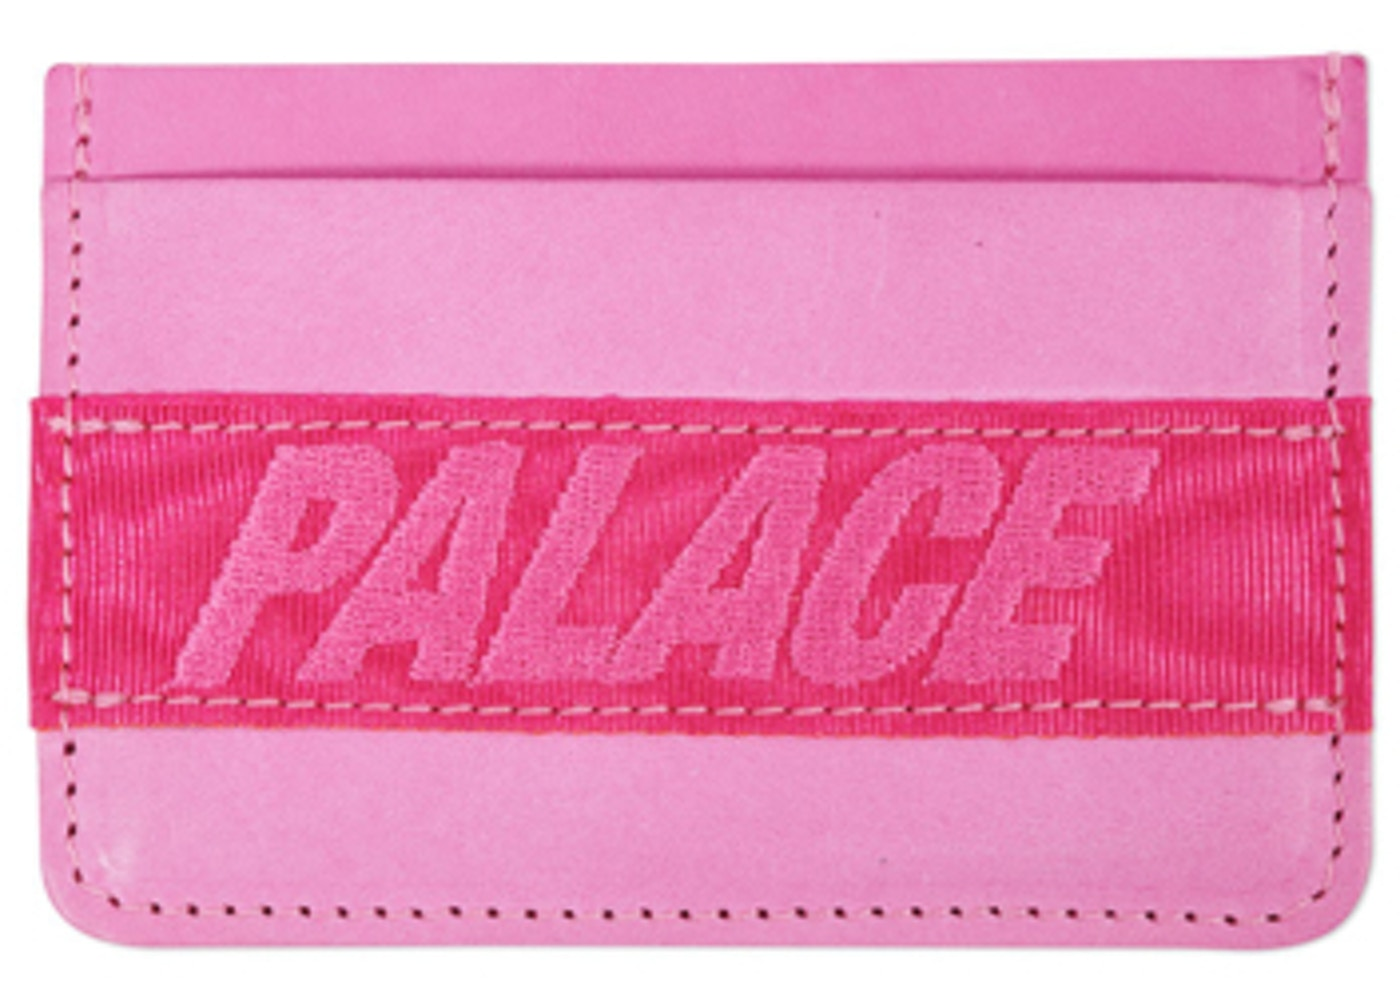 palace card holder pink - Pink Card Holder